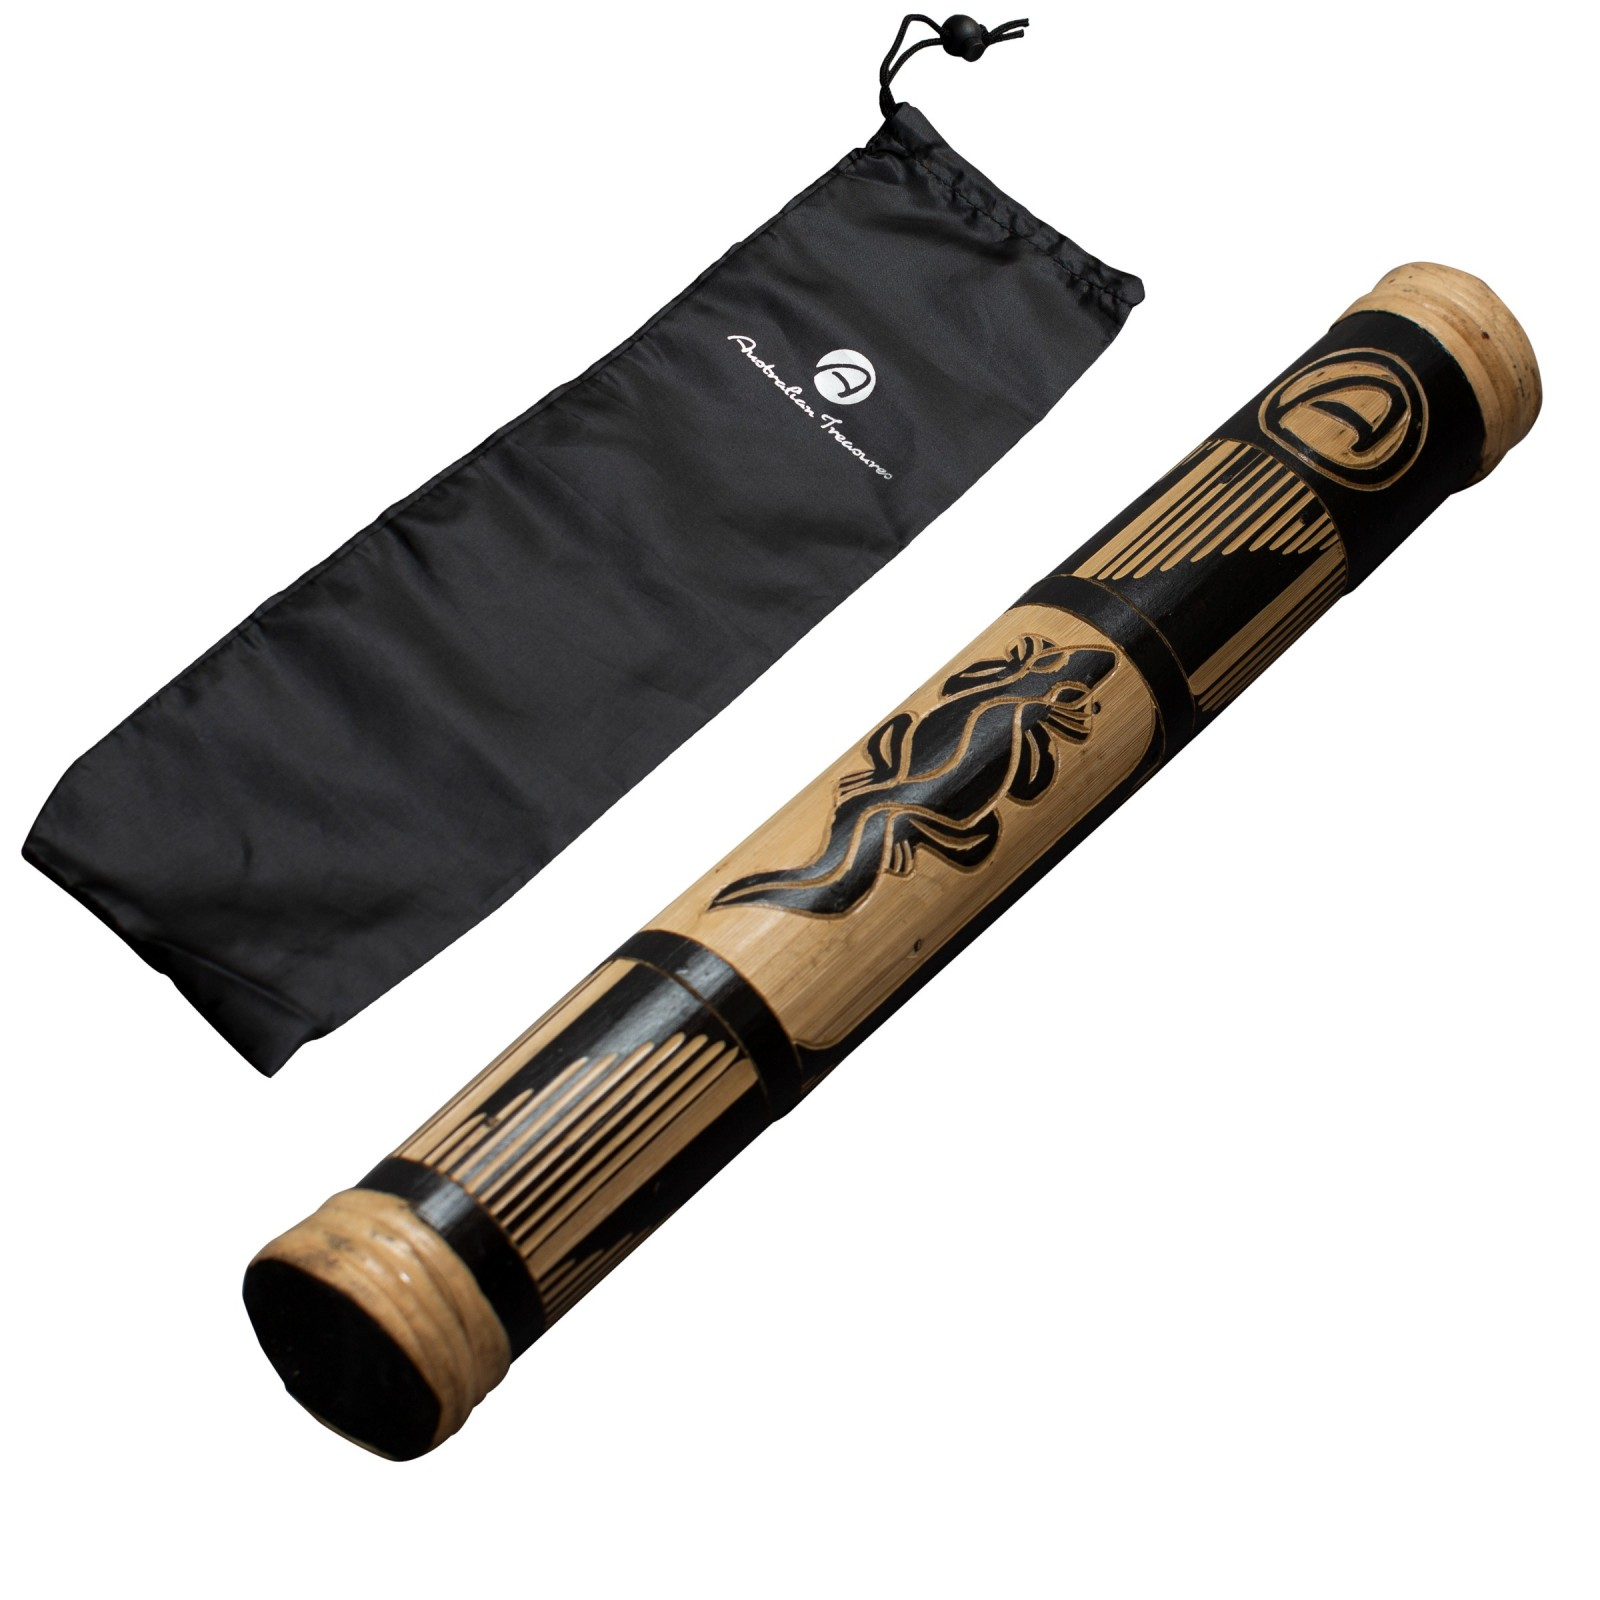 Rainstick 40cm carved